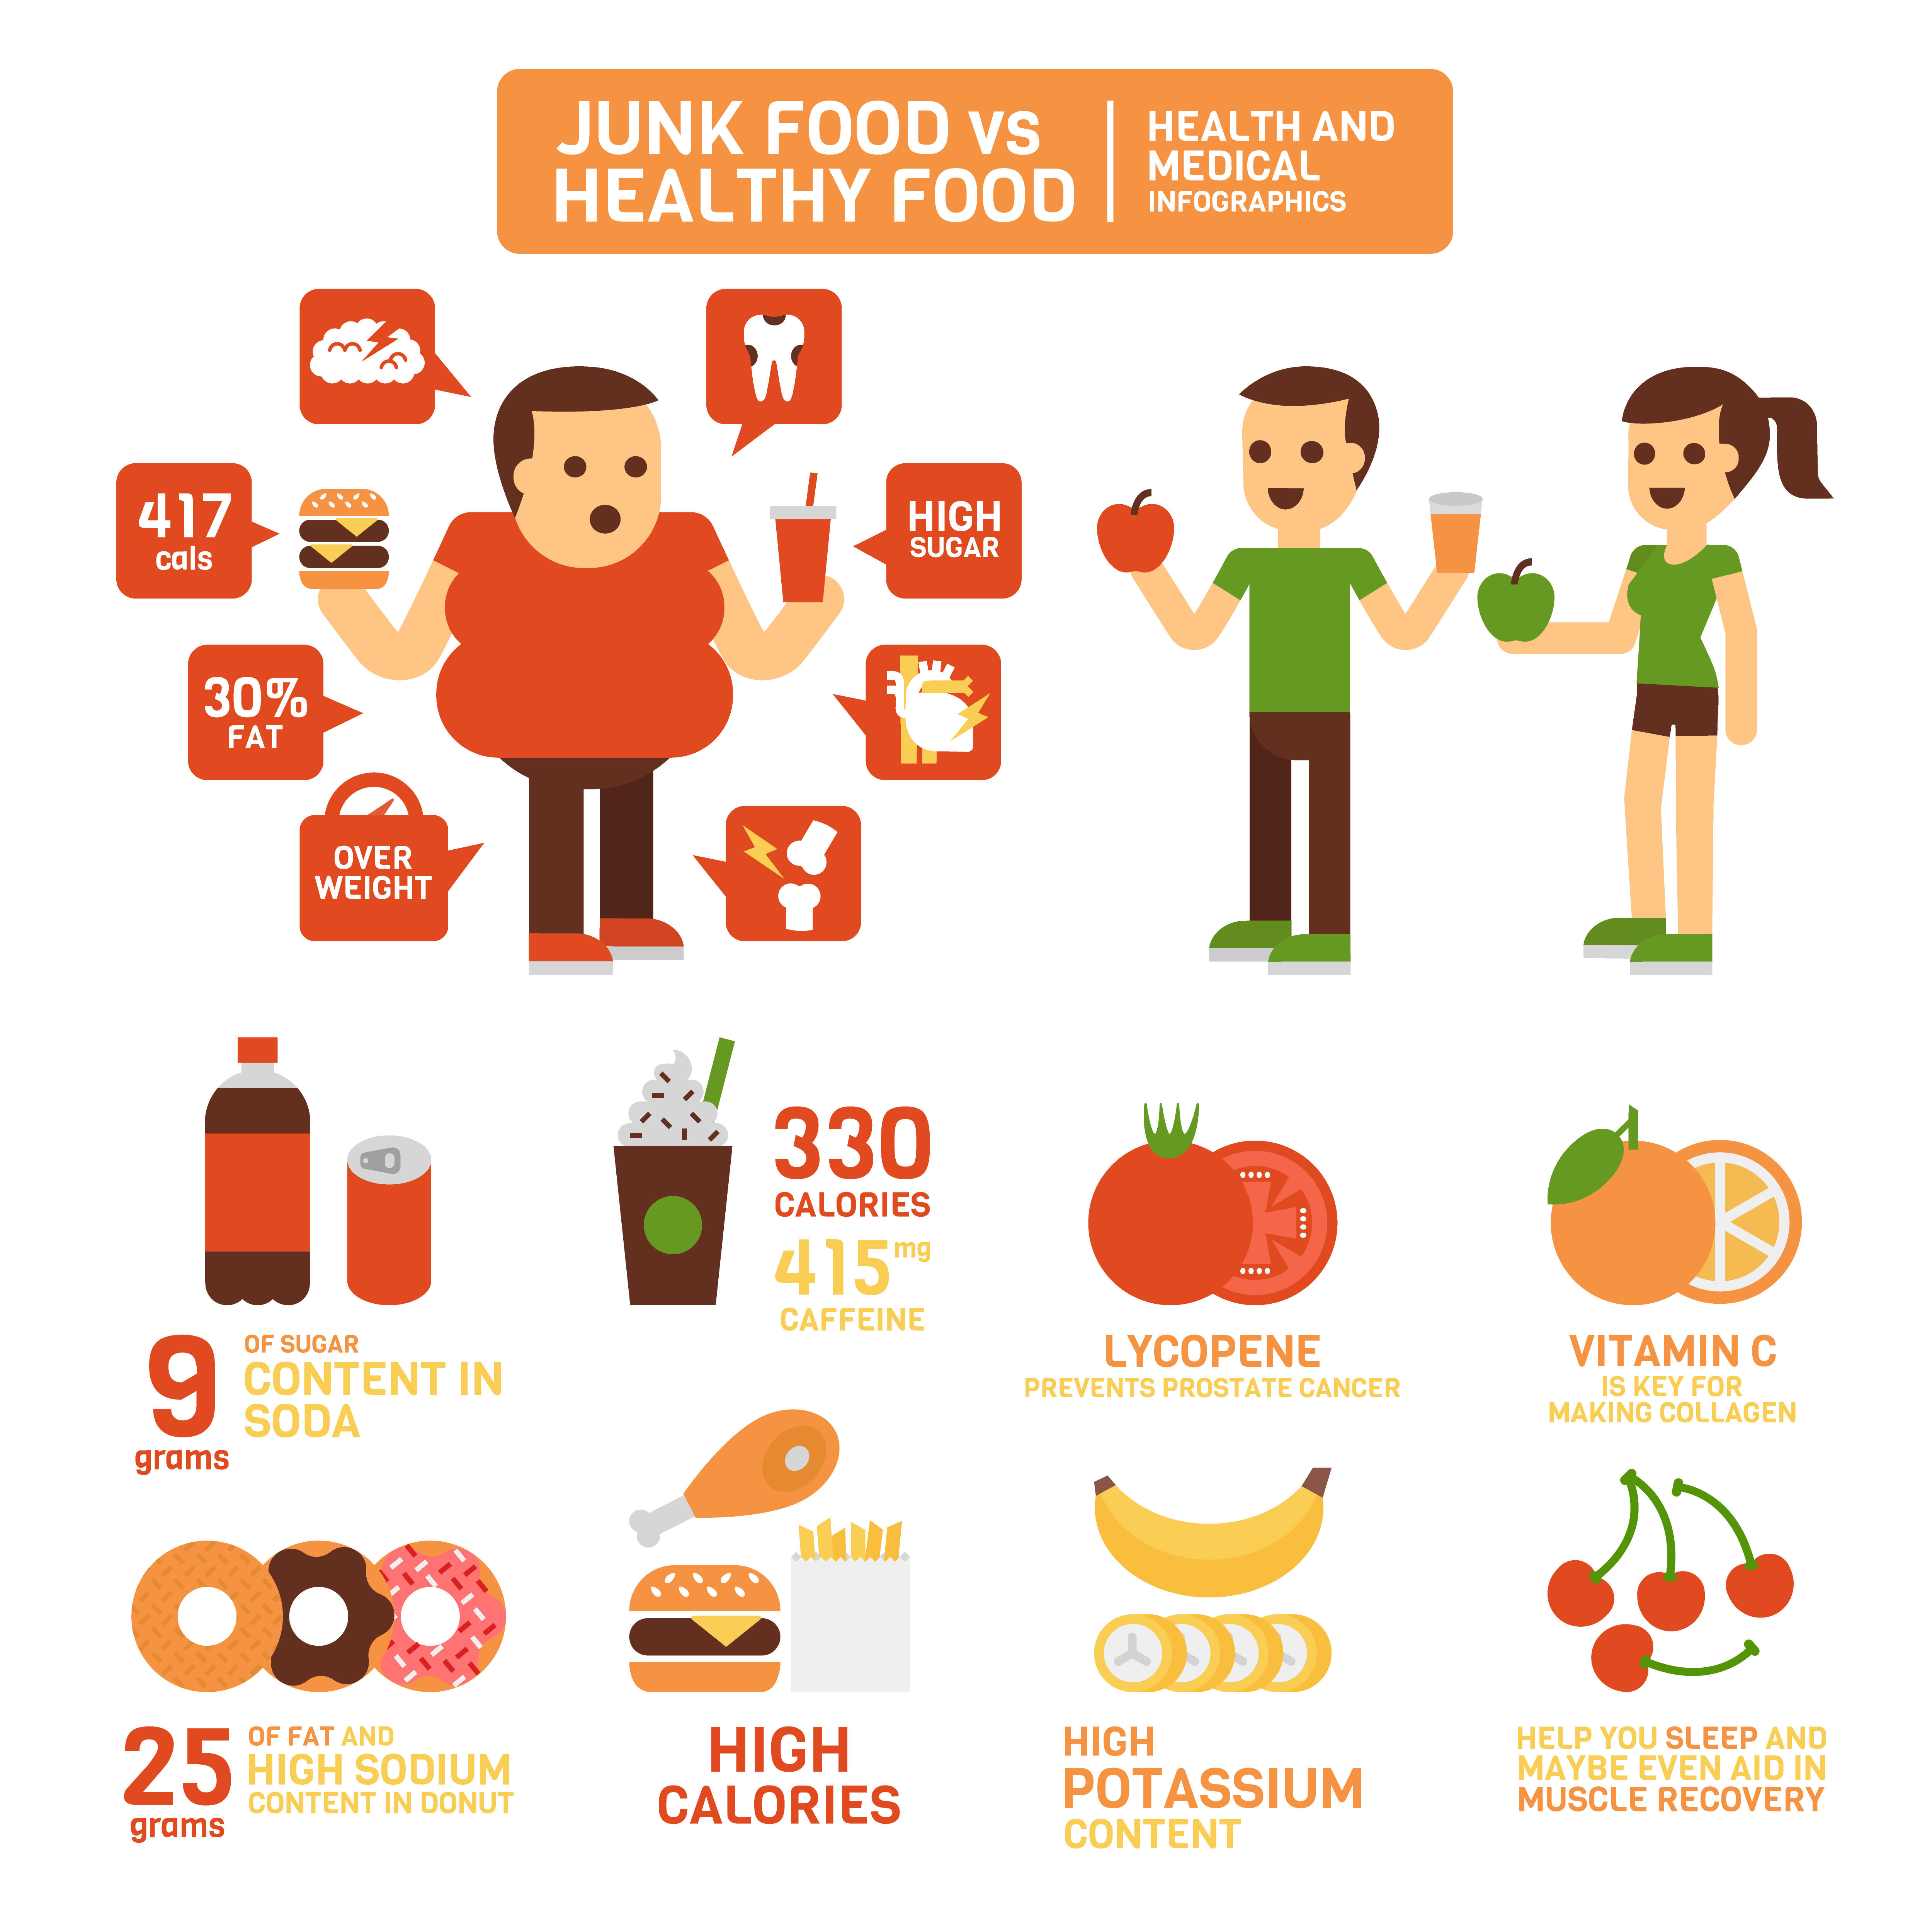 paragraph about healthy food and junk food